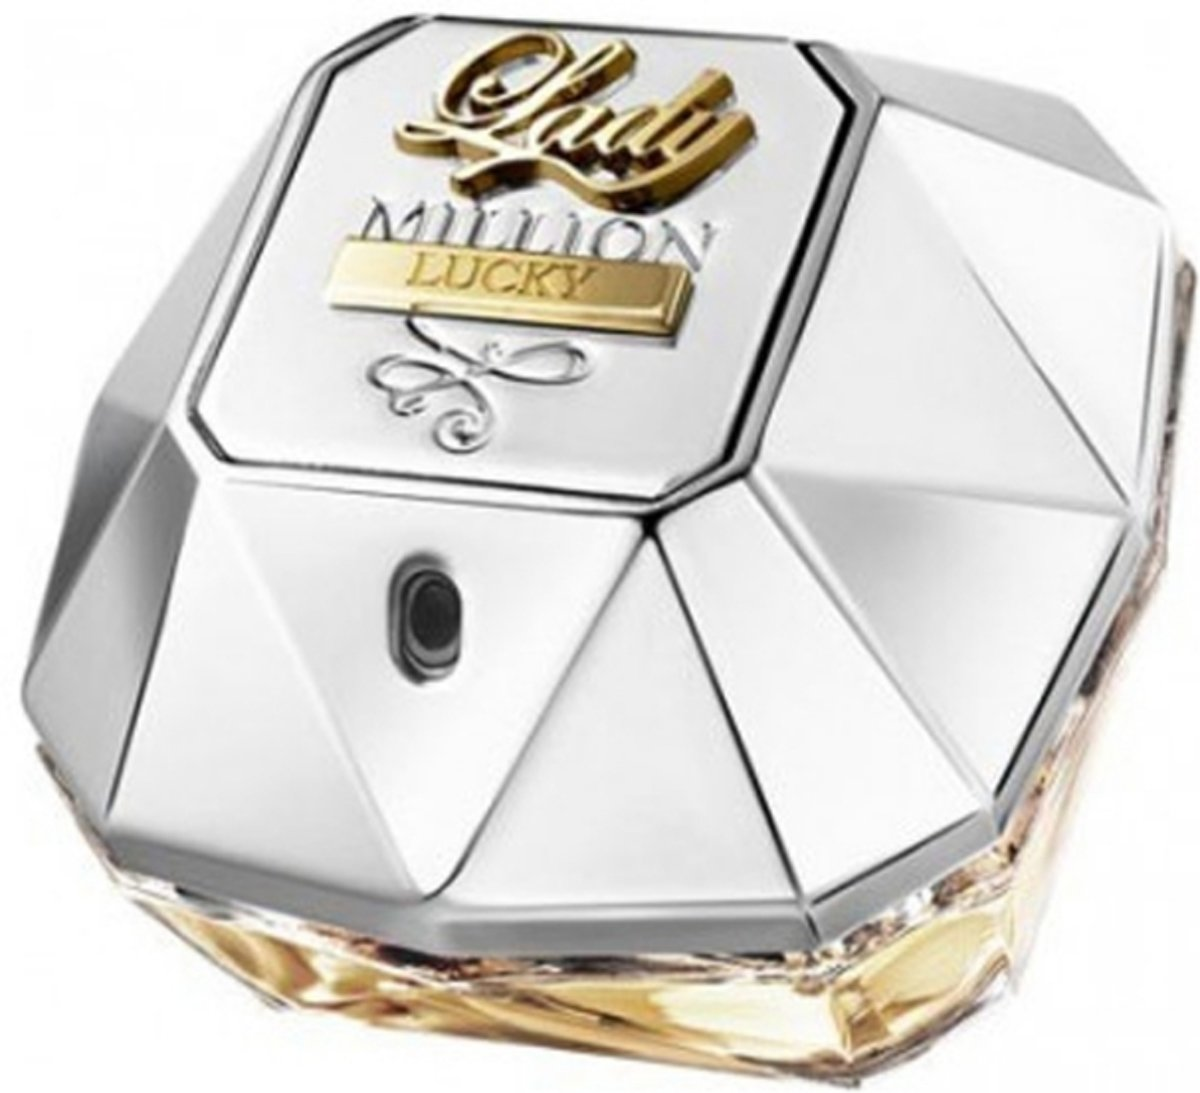 Paco Rabanne Lady Million Lucky - 50 ml - Eau de Parfum - for women